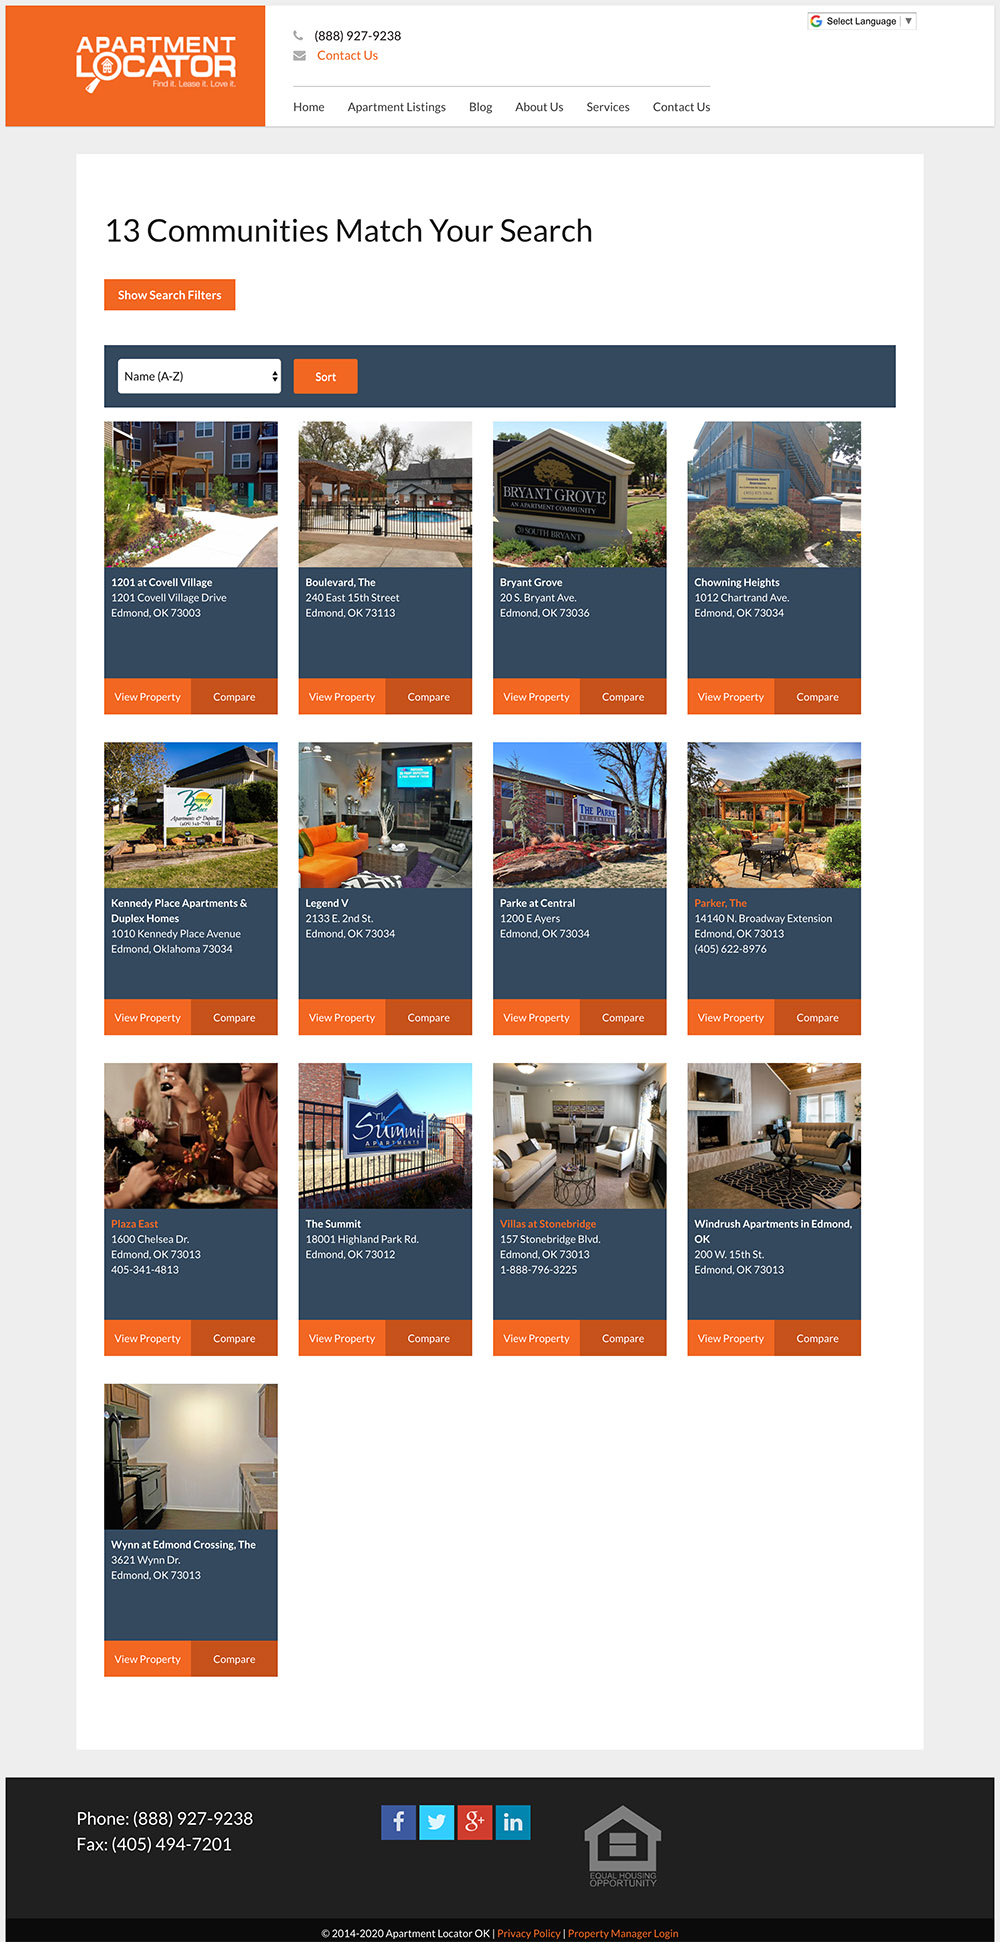 Search results landing page for an apartment locator website by ggc digital